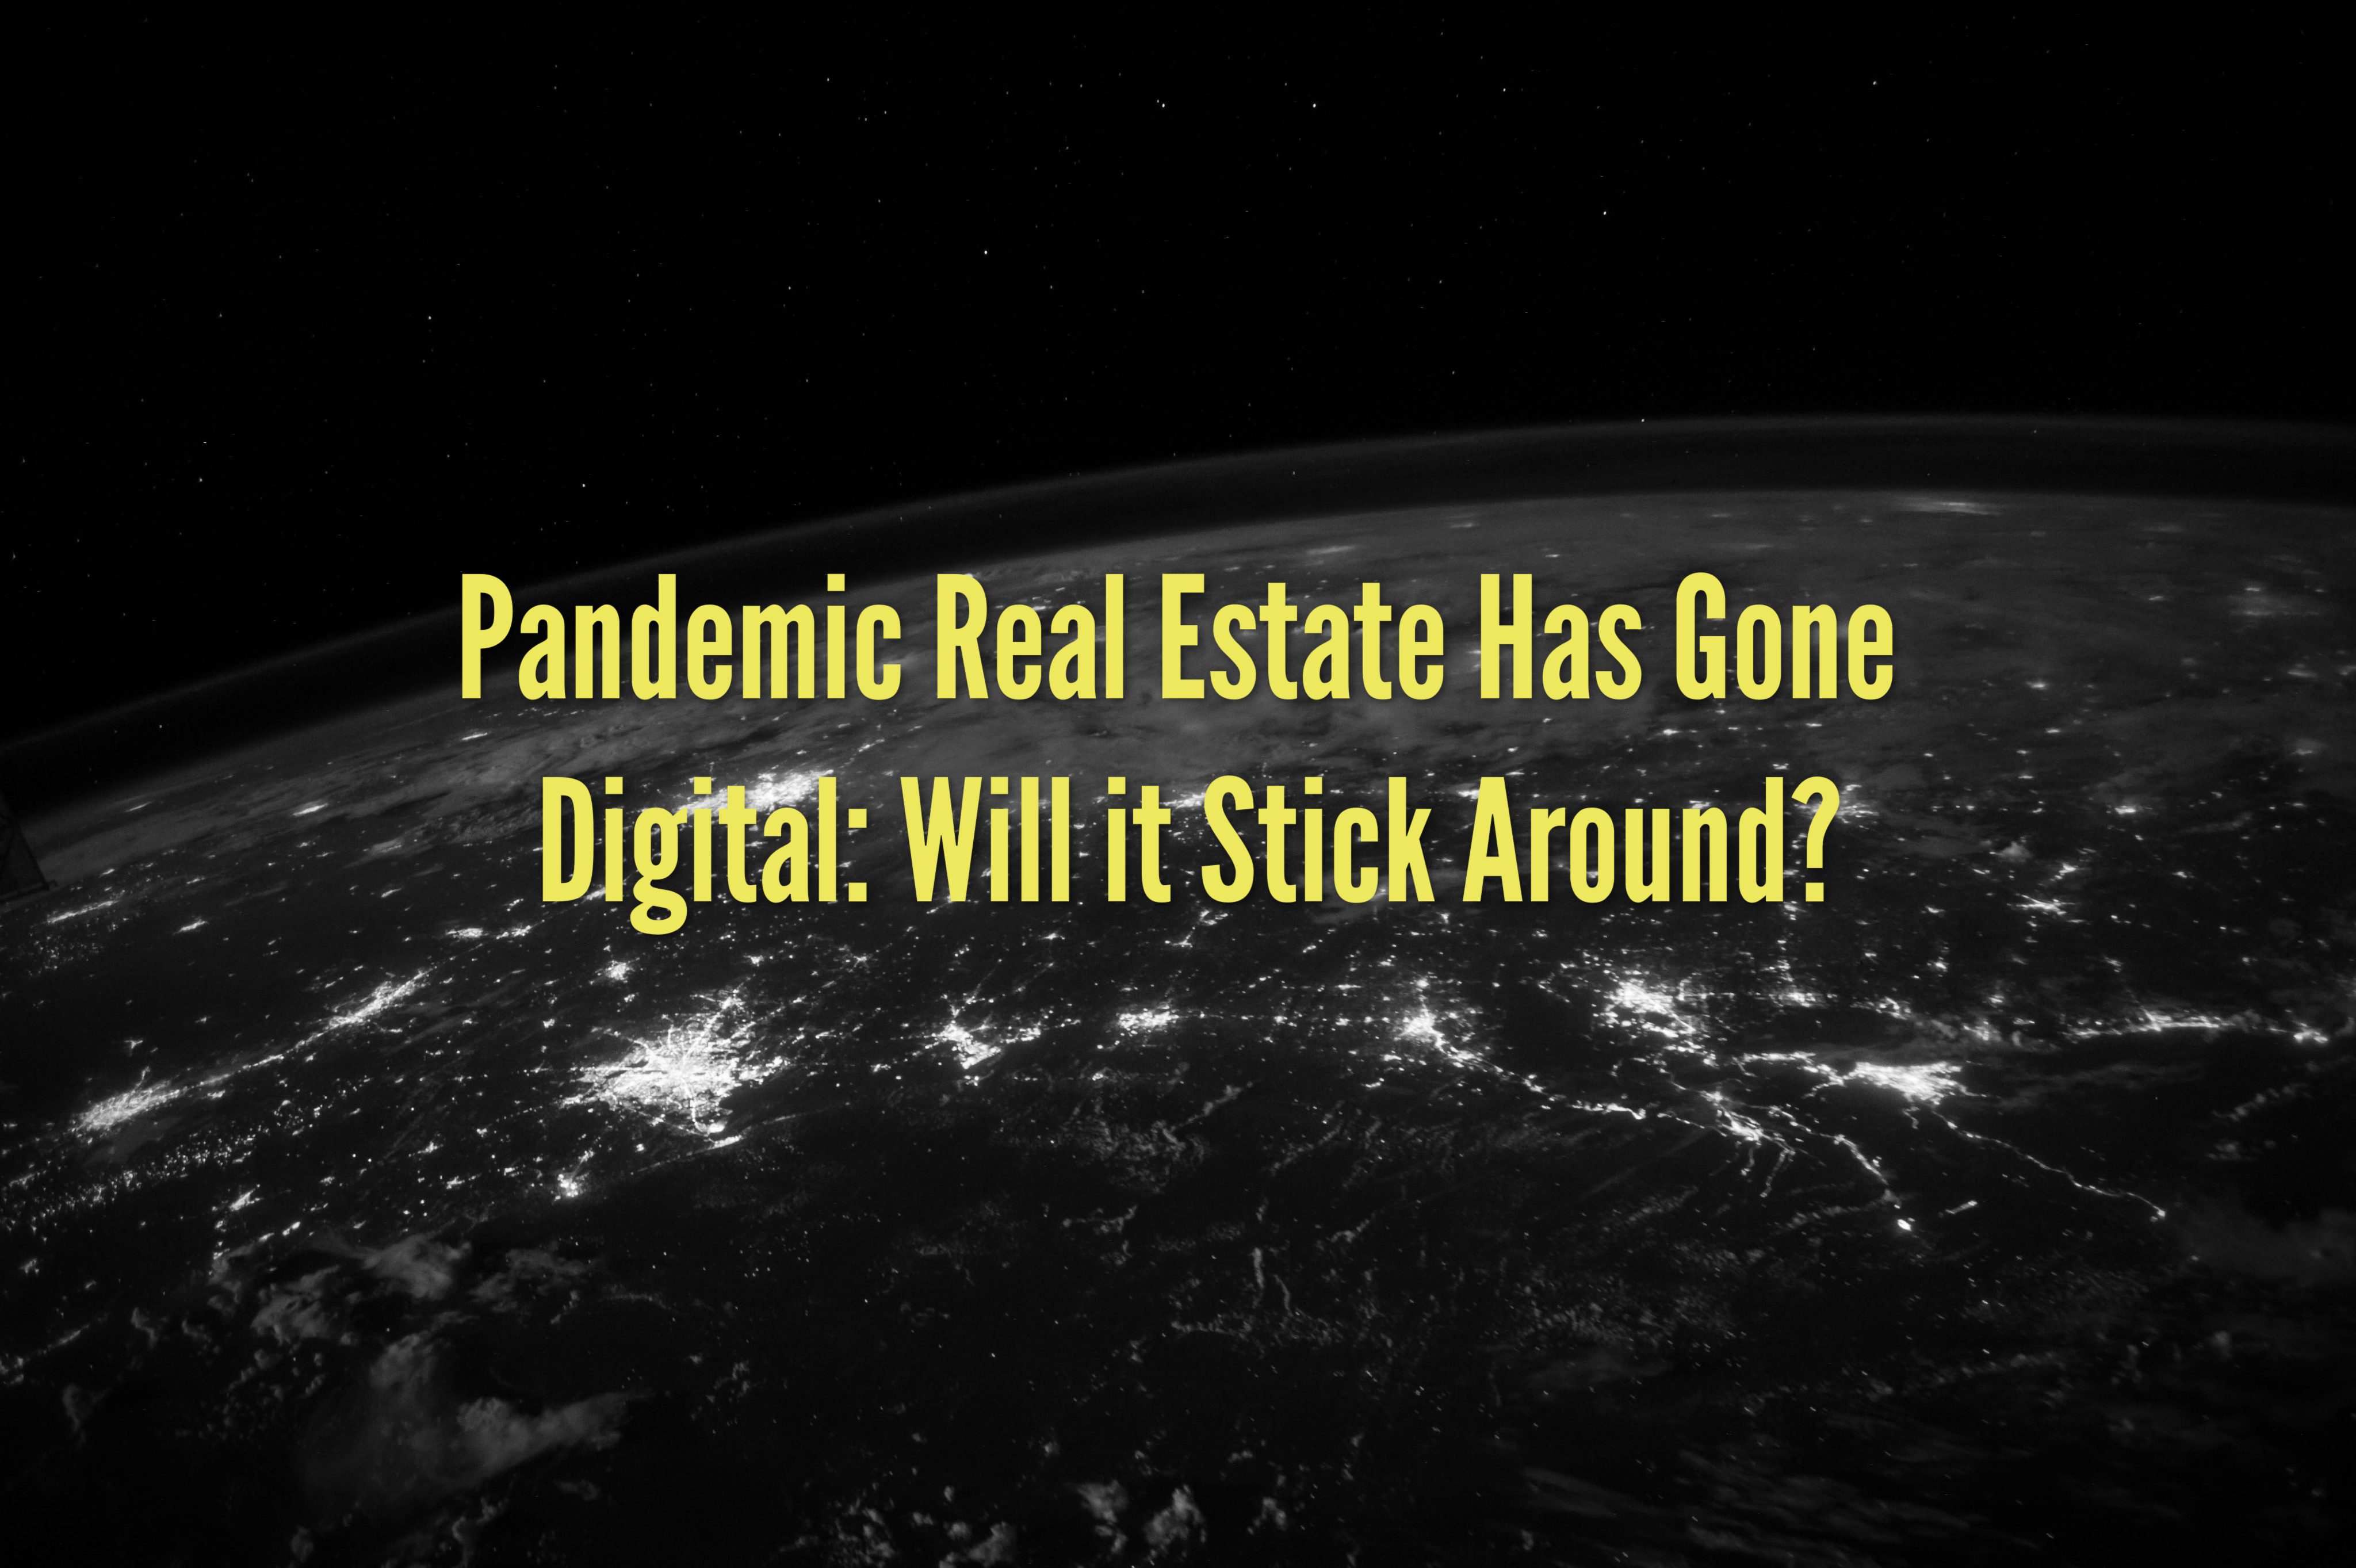 Pandemic Real Estate Has Gone Digital: Will it Stick Around?